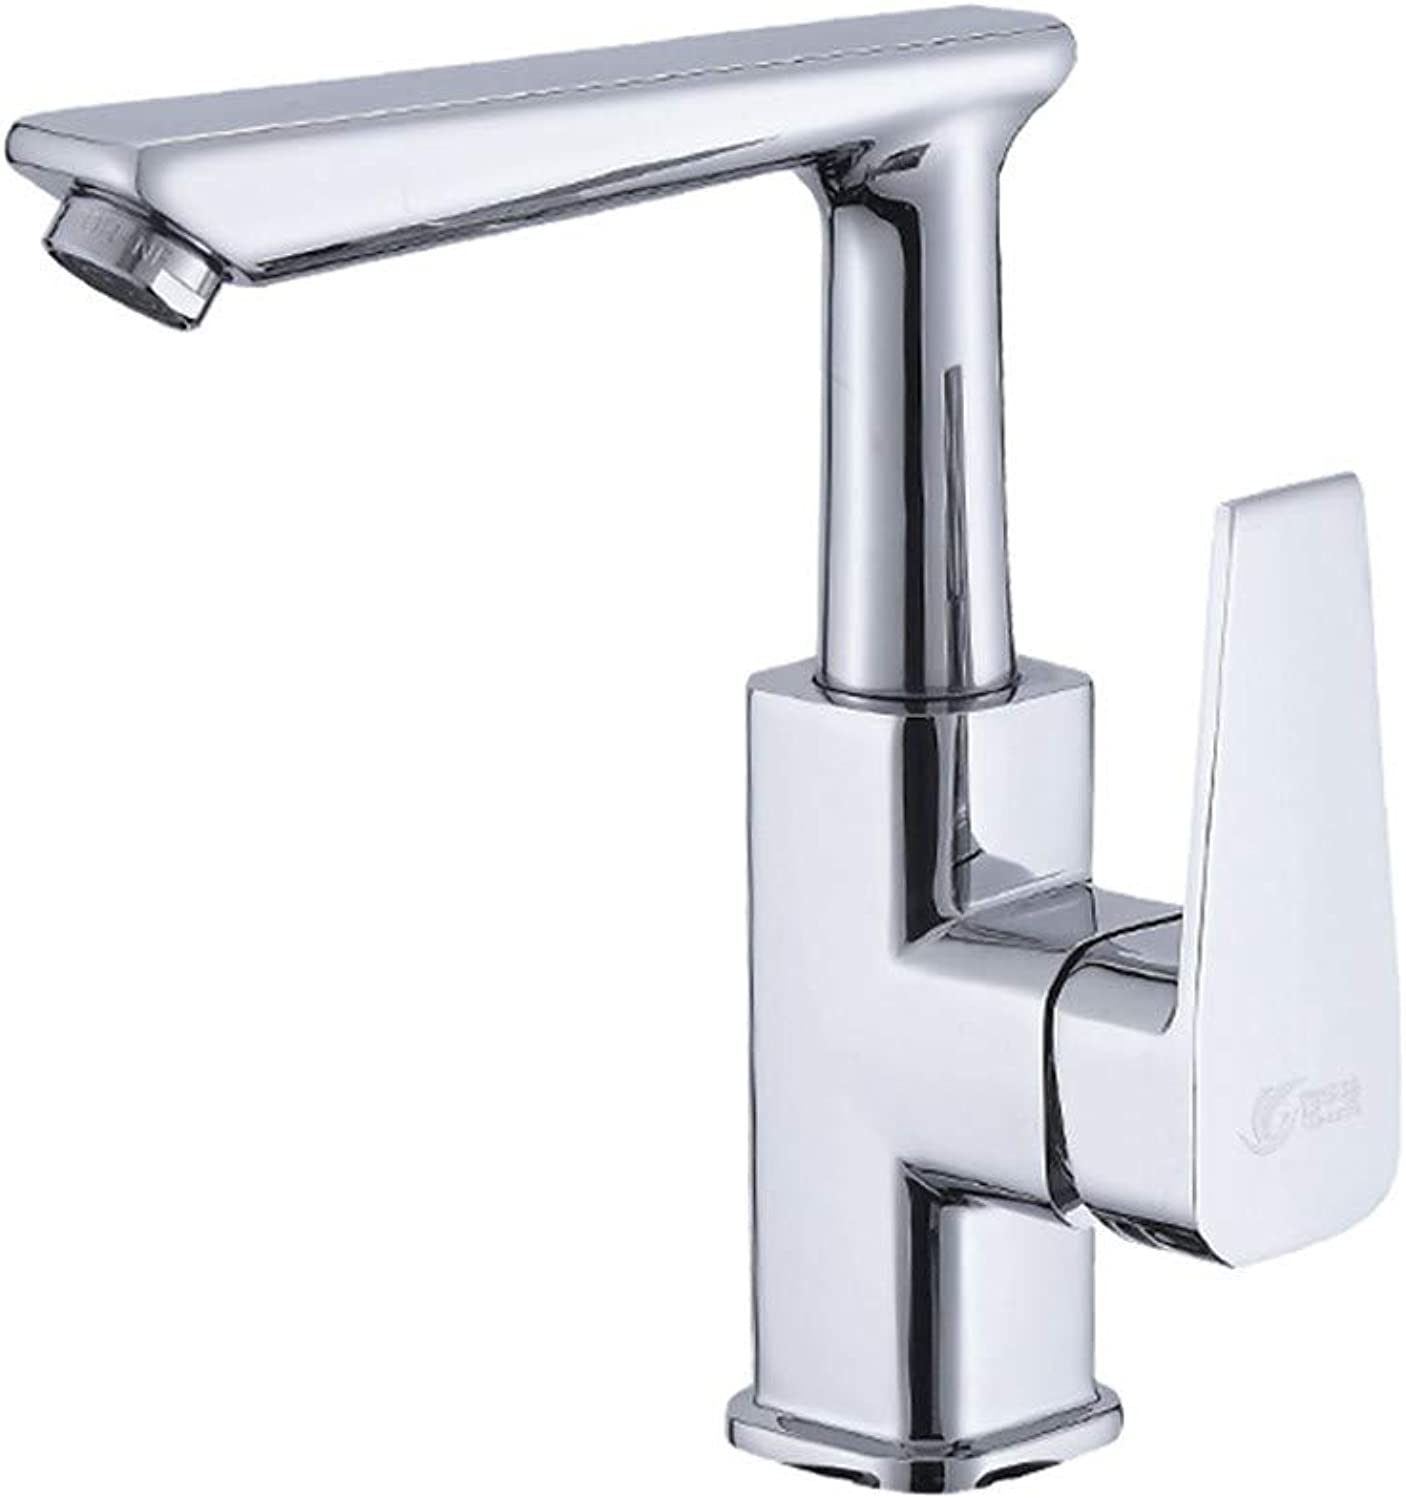 Faucet GJE Hot And Cold Single Handle Monobloc Tap,Bathroom Basin Mixer Tap Brass Fitting Washroom Mixer Tap